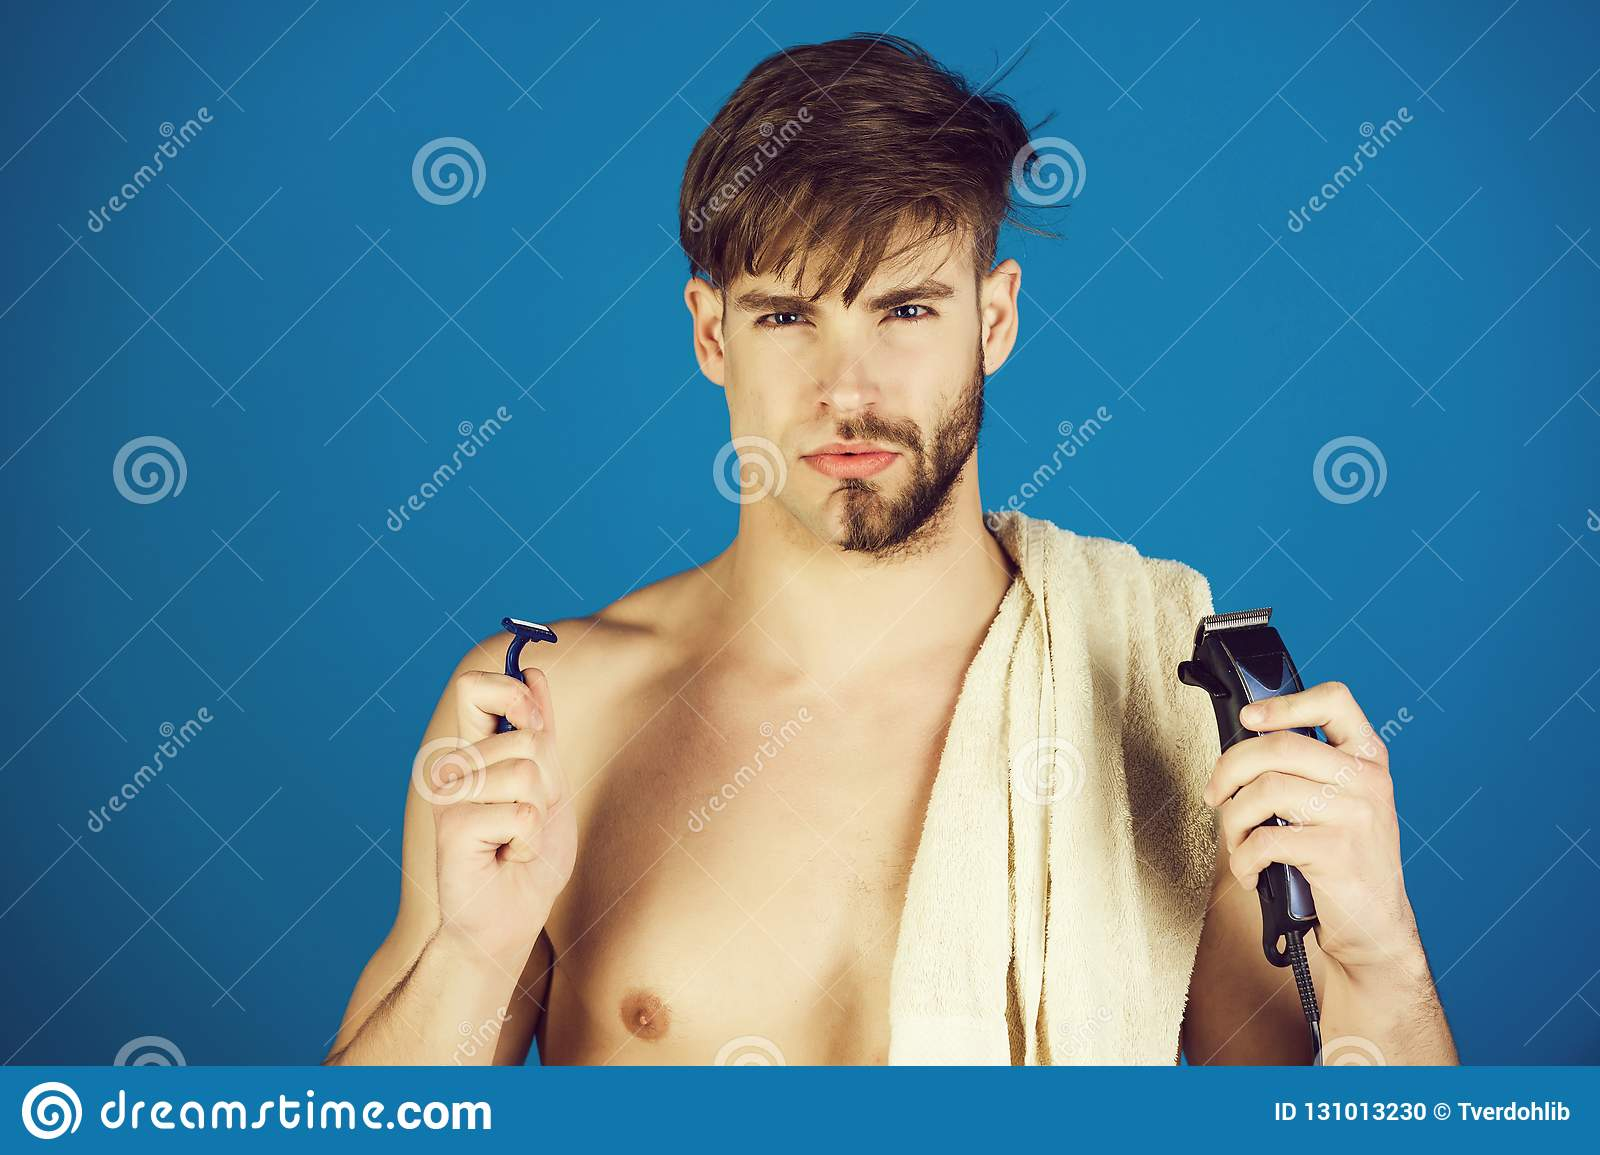 Man shaving face hair, beard, moustache with safety razor and electric  shaver with towel on naked shoulder on blue background. Innovation,  archaism.